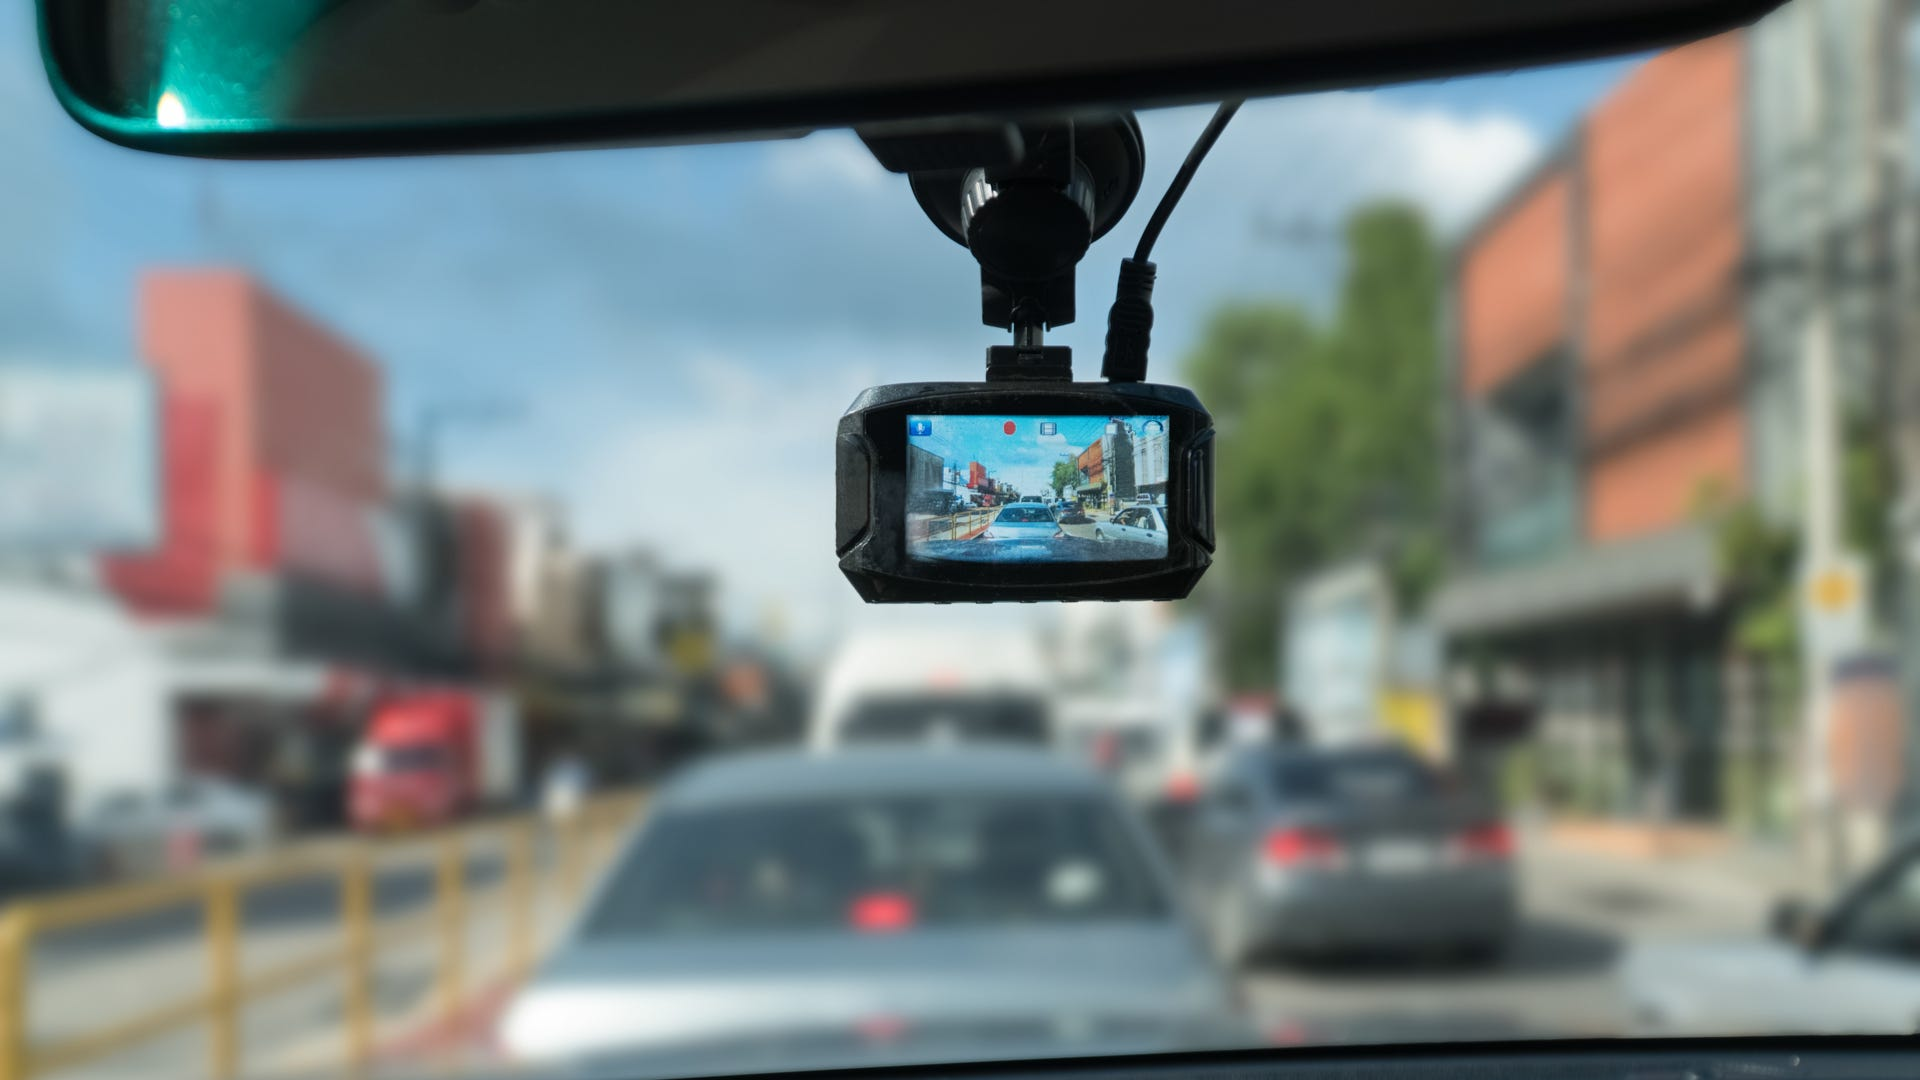 A dash camera that's attached to the rearview mirror records the cars in front of it.